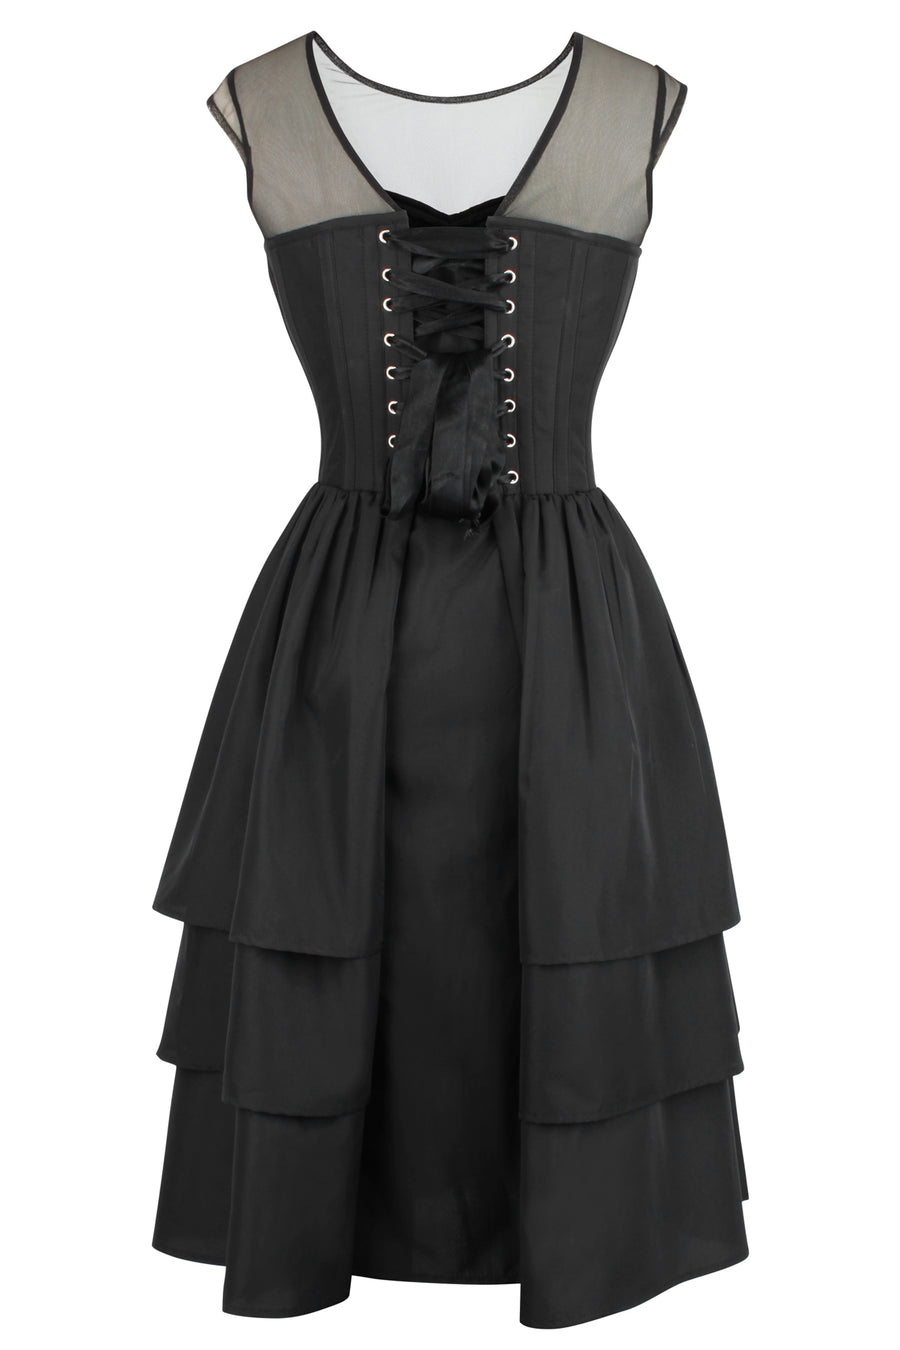 Black Corset Dress with Mesh Sleeves